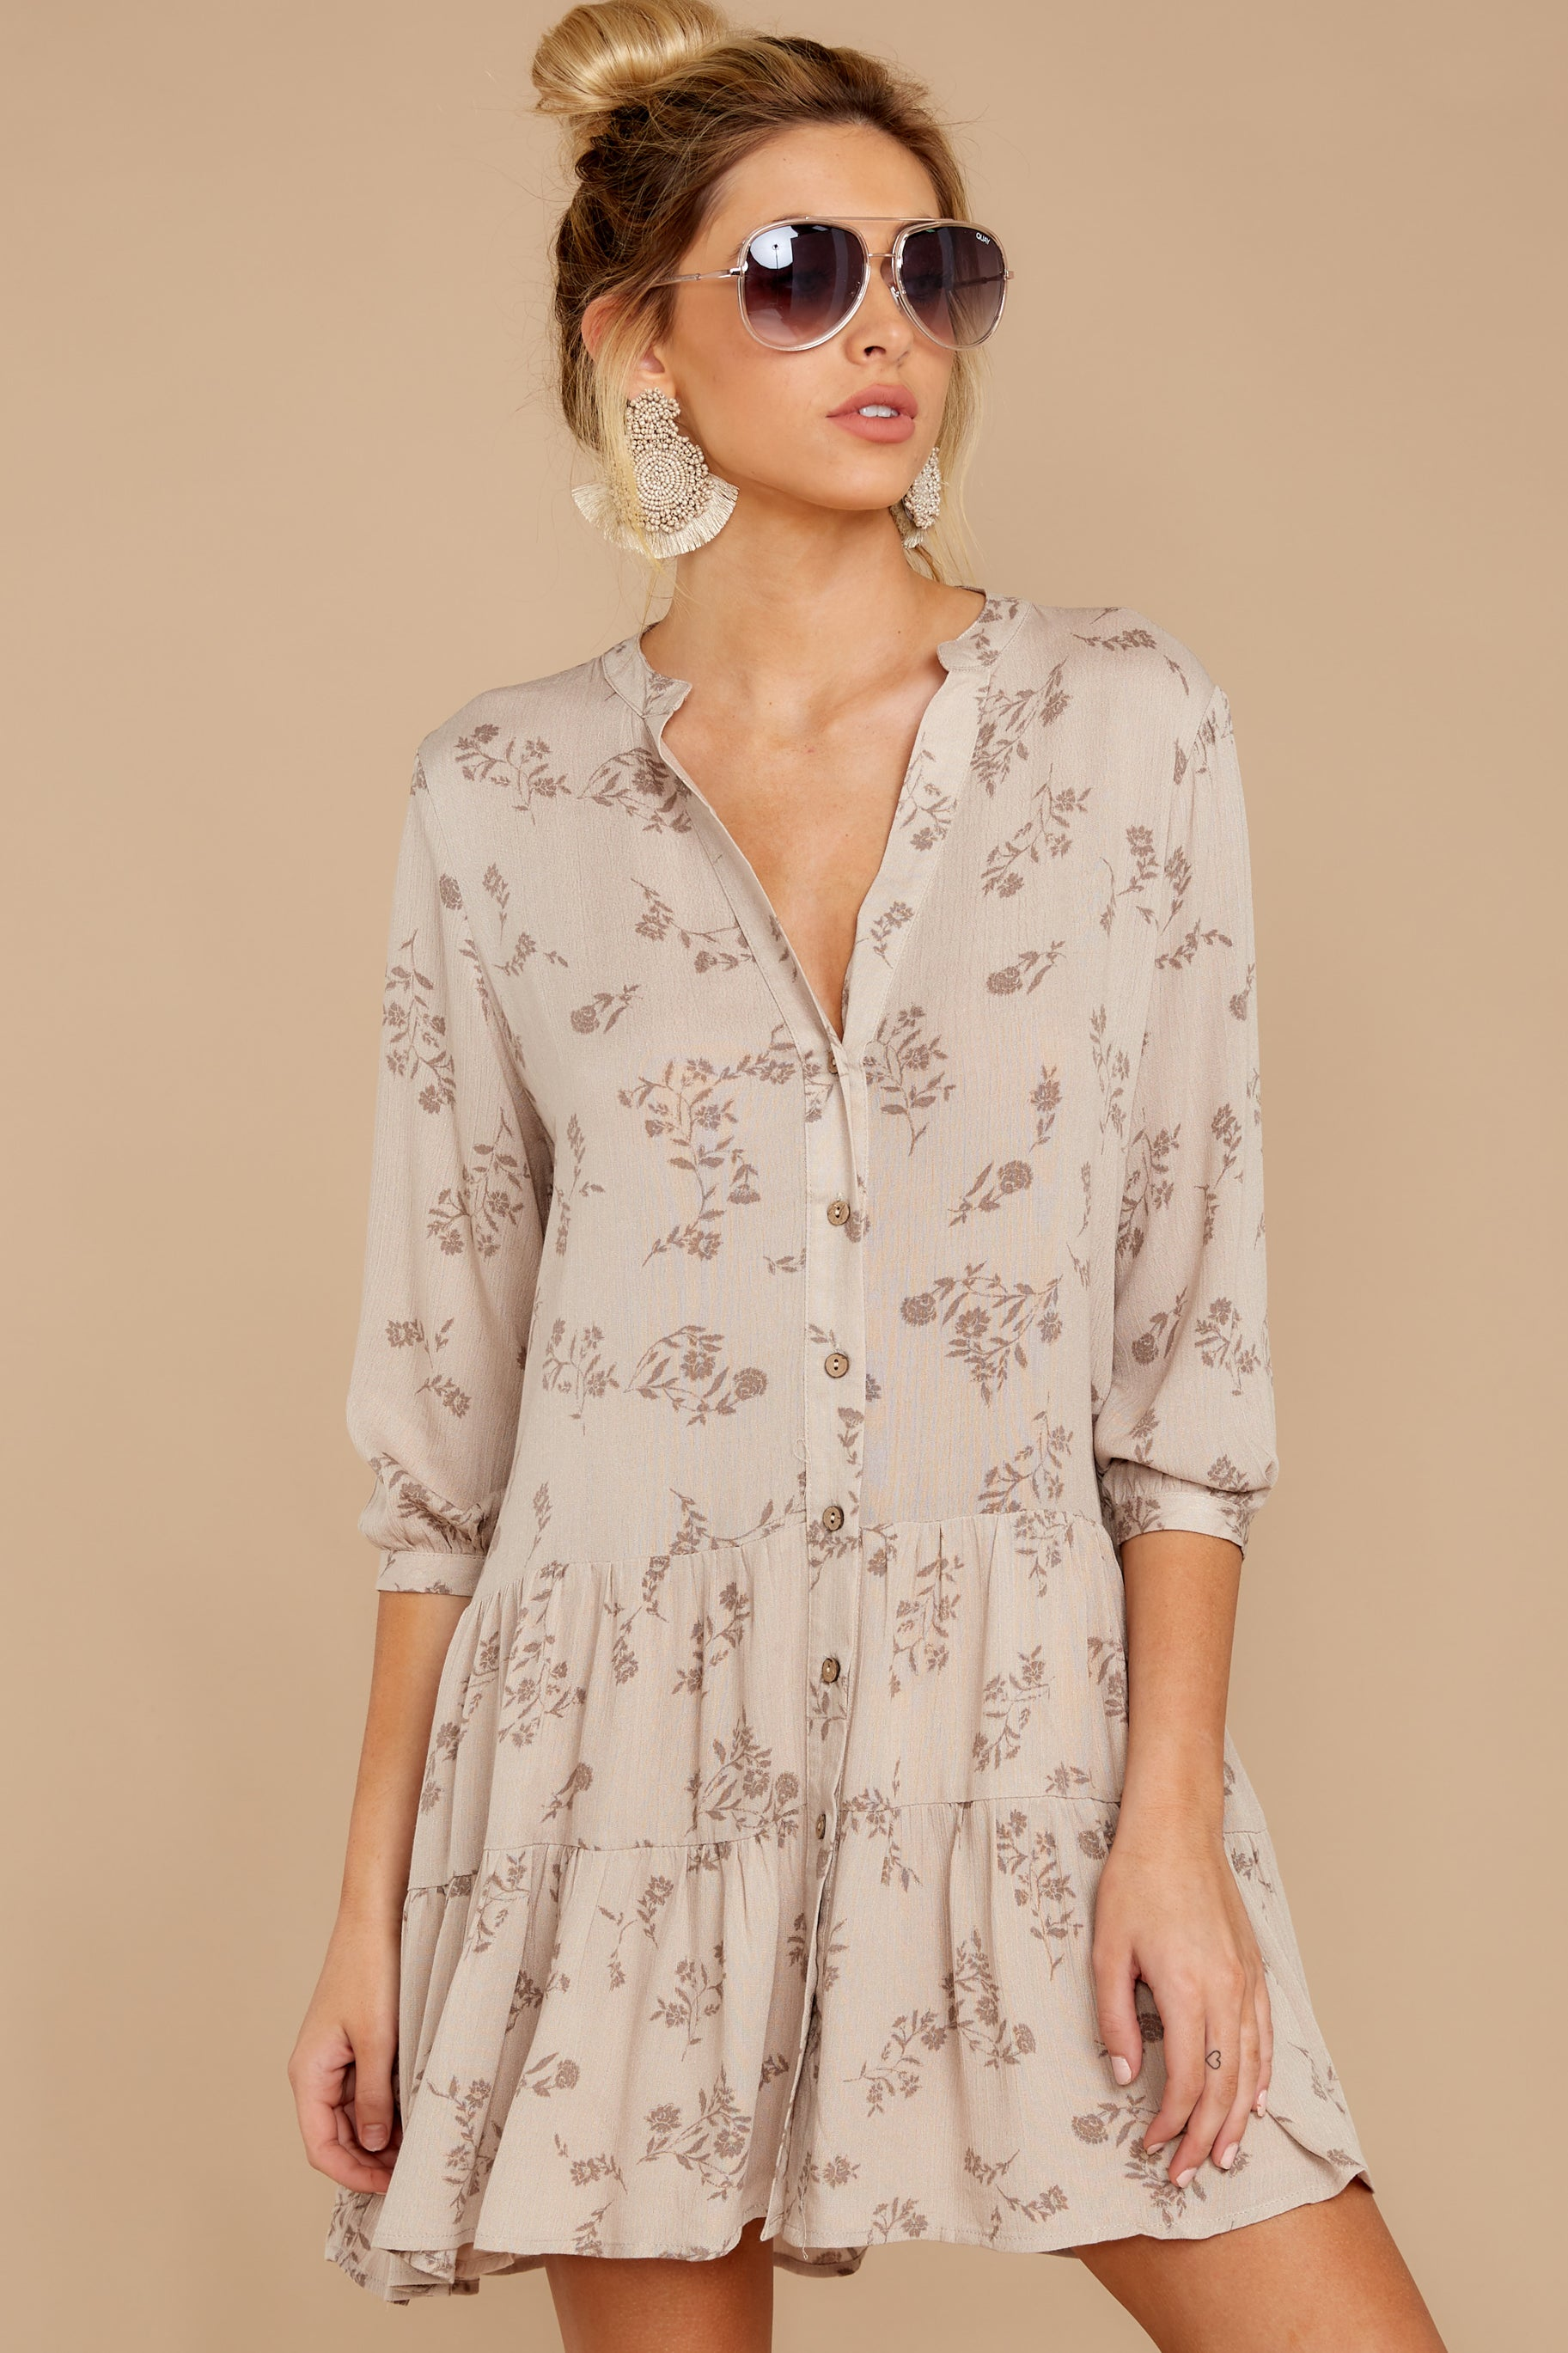 6 Just Comes Naturally Light Tan Print Dress at reddressboutique.com